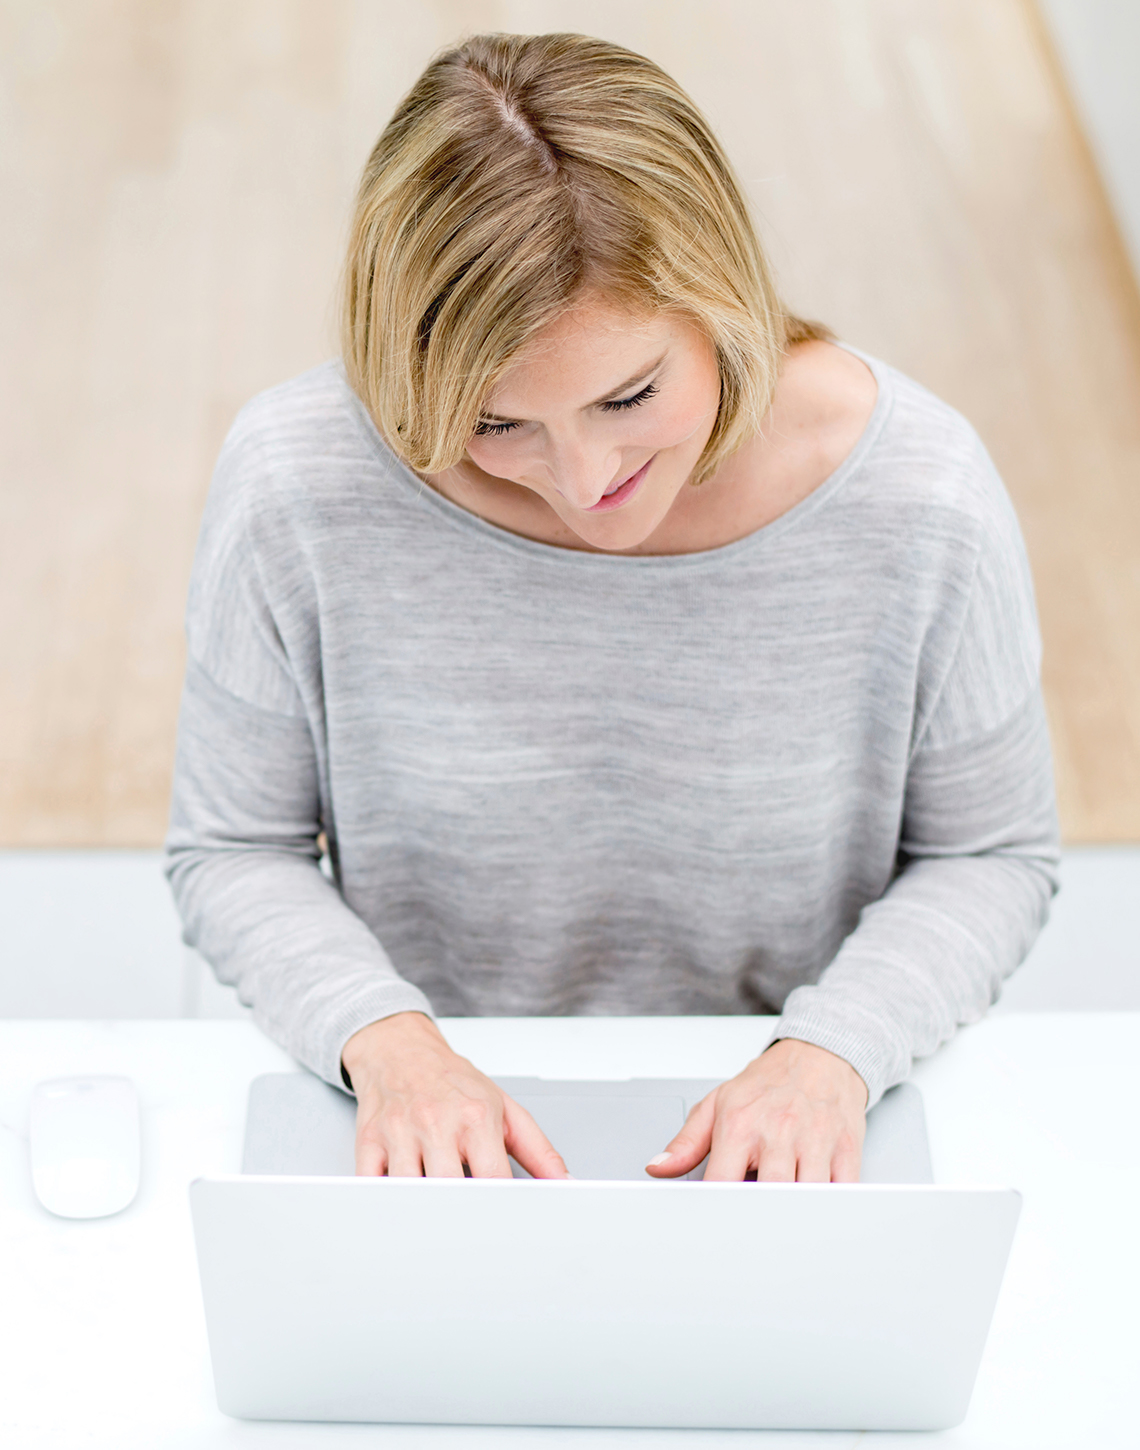 Woman looking up resources on laptop